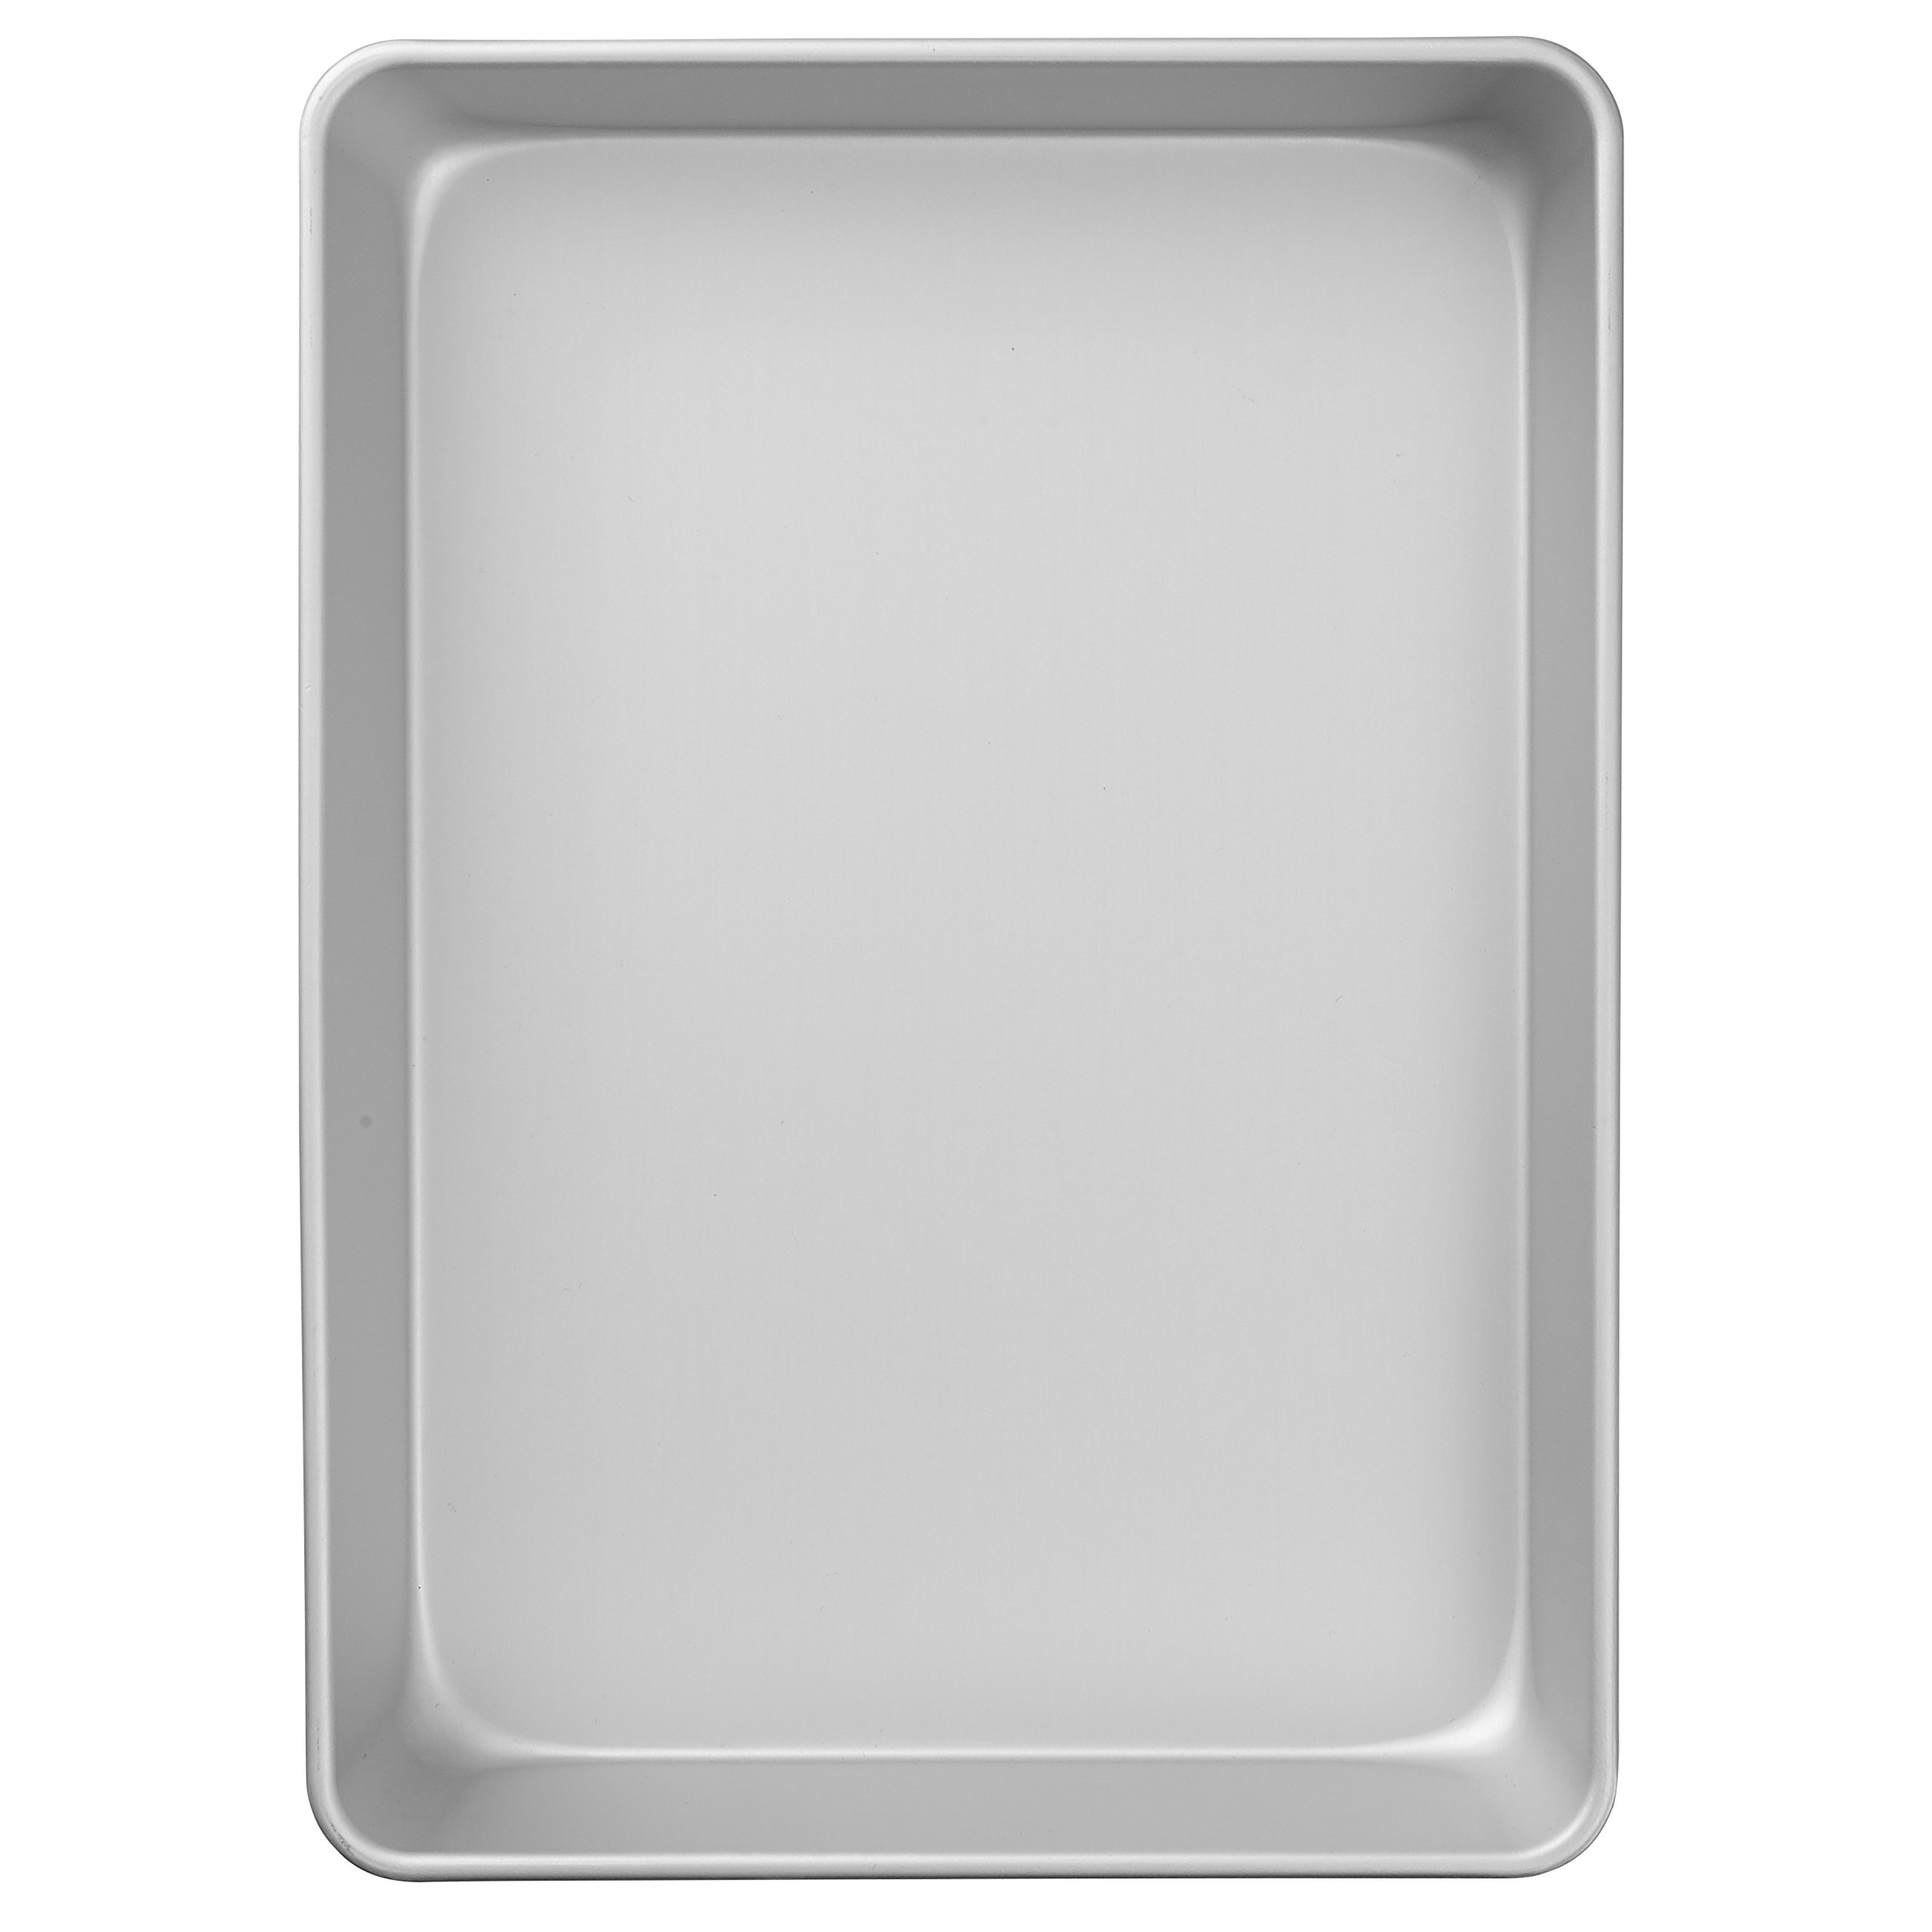 Wilton Performance Pans Aluminum Quarter Sheet Cake Pan, Durable Aluminum Heats Evenly and Holds its Shape Use After Use, 9 x 13-Inch by Wilton